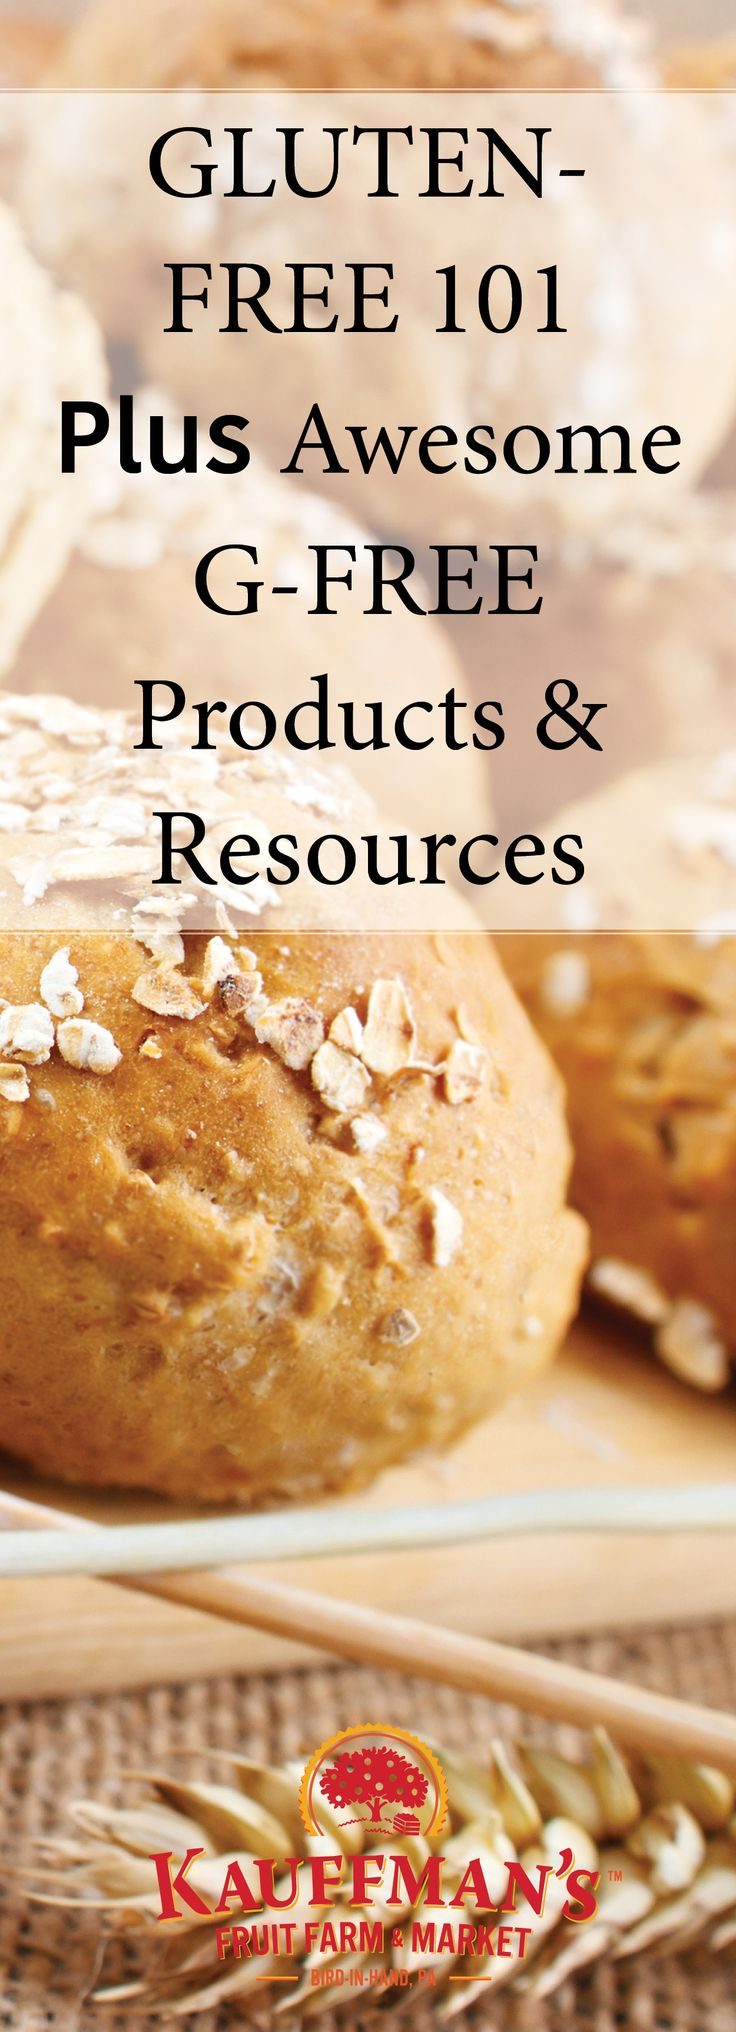 This blog post defines gluten and sheds light on gluten intolerances, allergies, and even Celiac Disease. Even better, it lists some great g-free products, foods, and resources. http://info.kauffmansfruitfarm.com/blog/gluten-free-101-and-awesome-g-free-products-resources